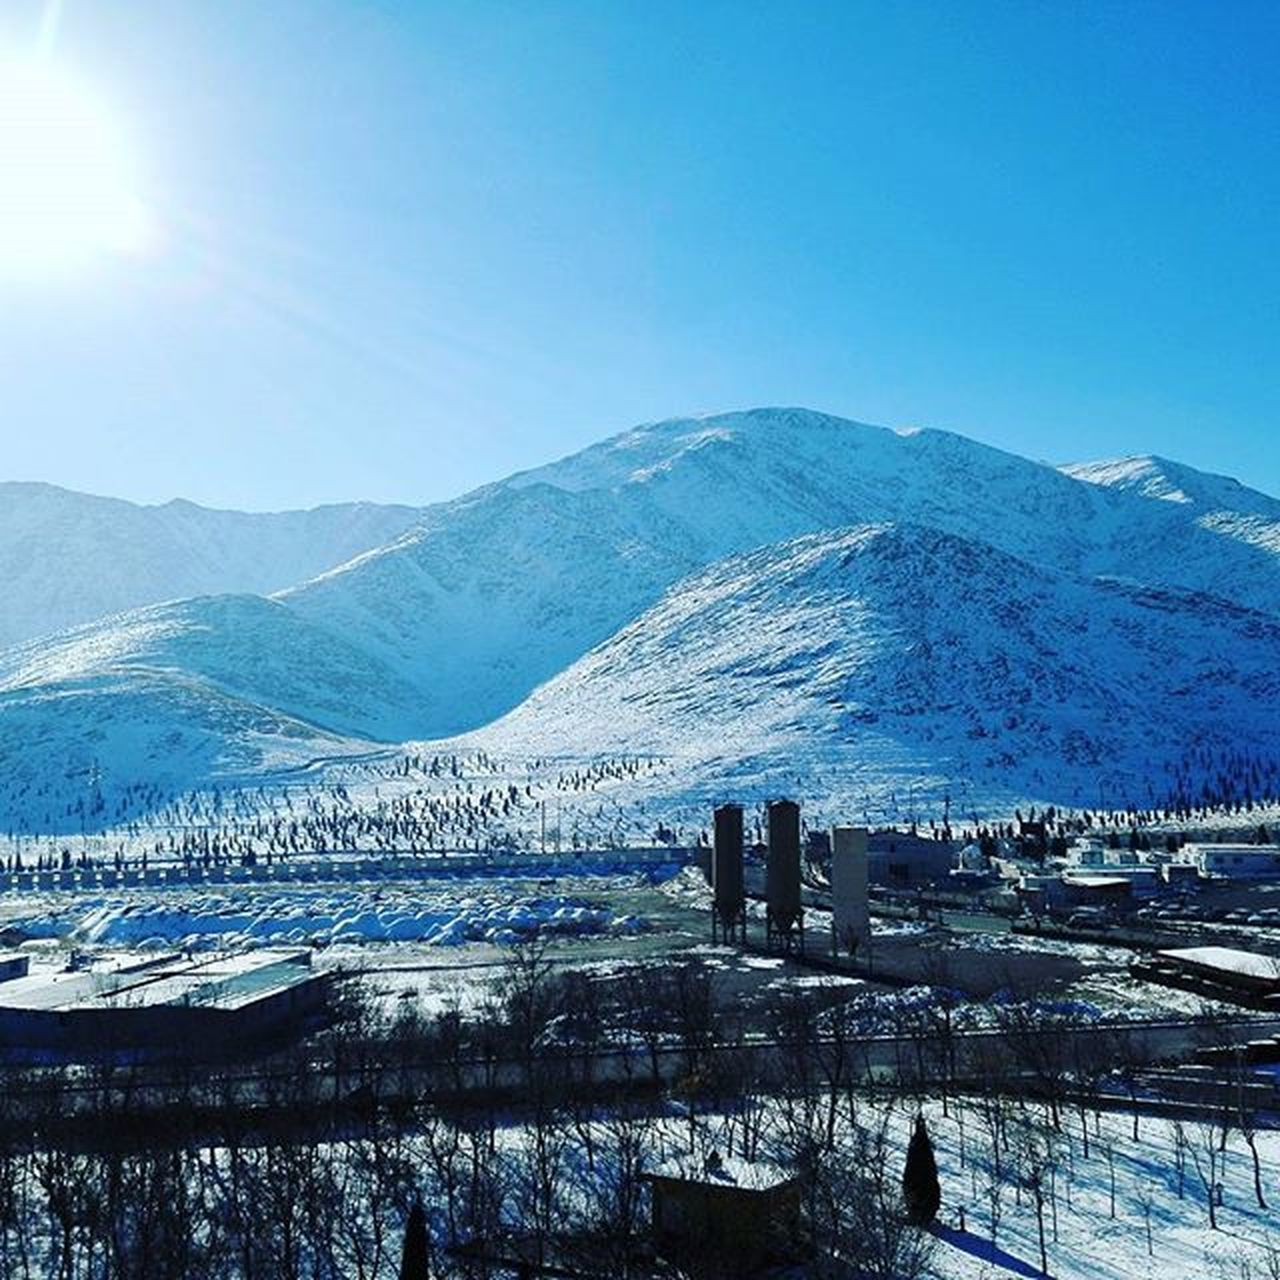 snow, winter, cold temperature, mountain, season, mountain range, snowcapped mountain, tranquil scene, scenics, tranquility, beauty in nature, weather, landscape, covering, frozen, clear sky, blue, nature, copy space, lake